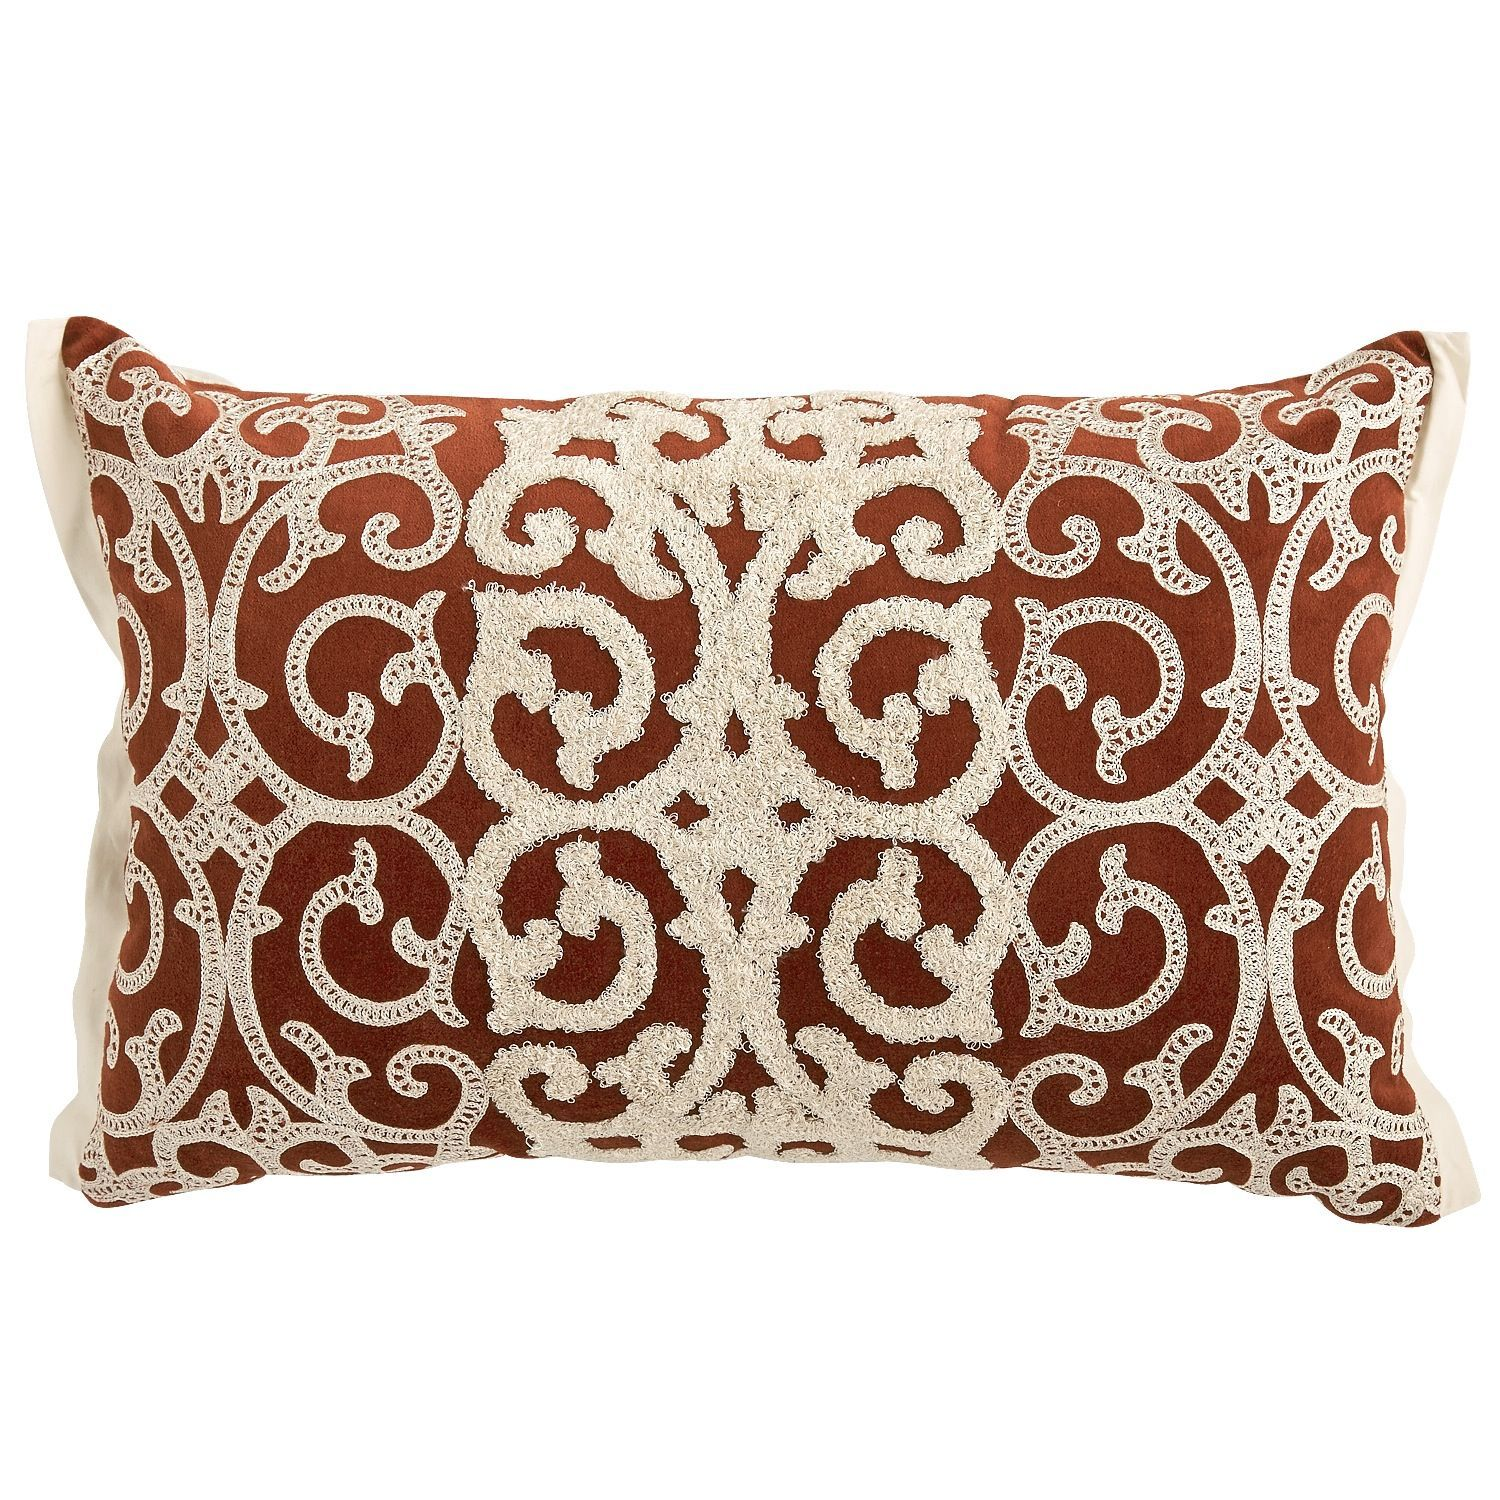 Velvet Scroll Lumbar Pillow - Rust | Pier 1 Imports | pillows and ...